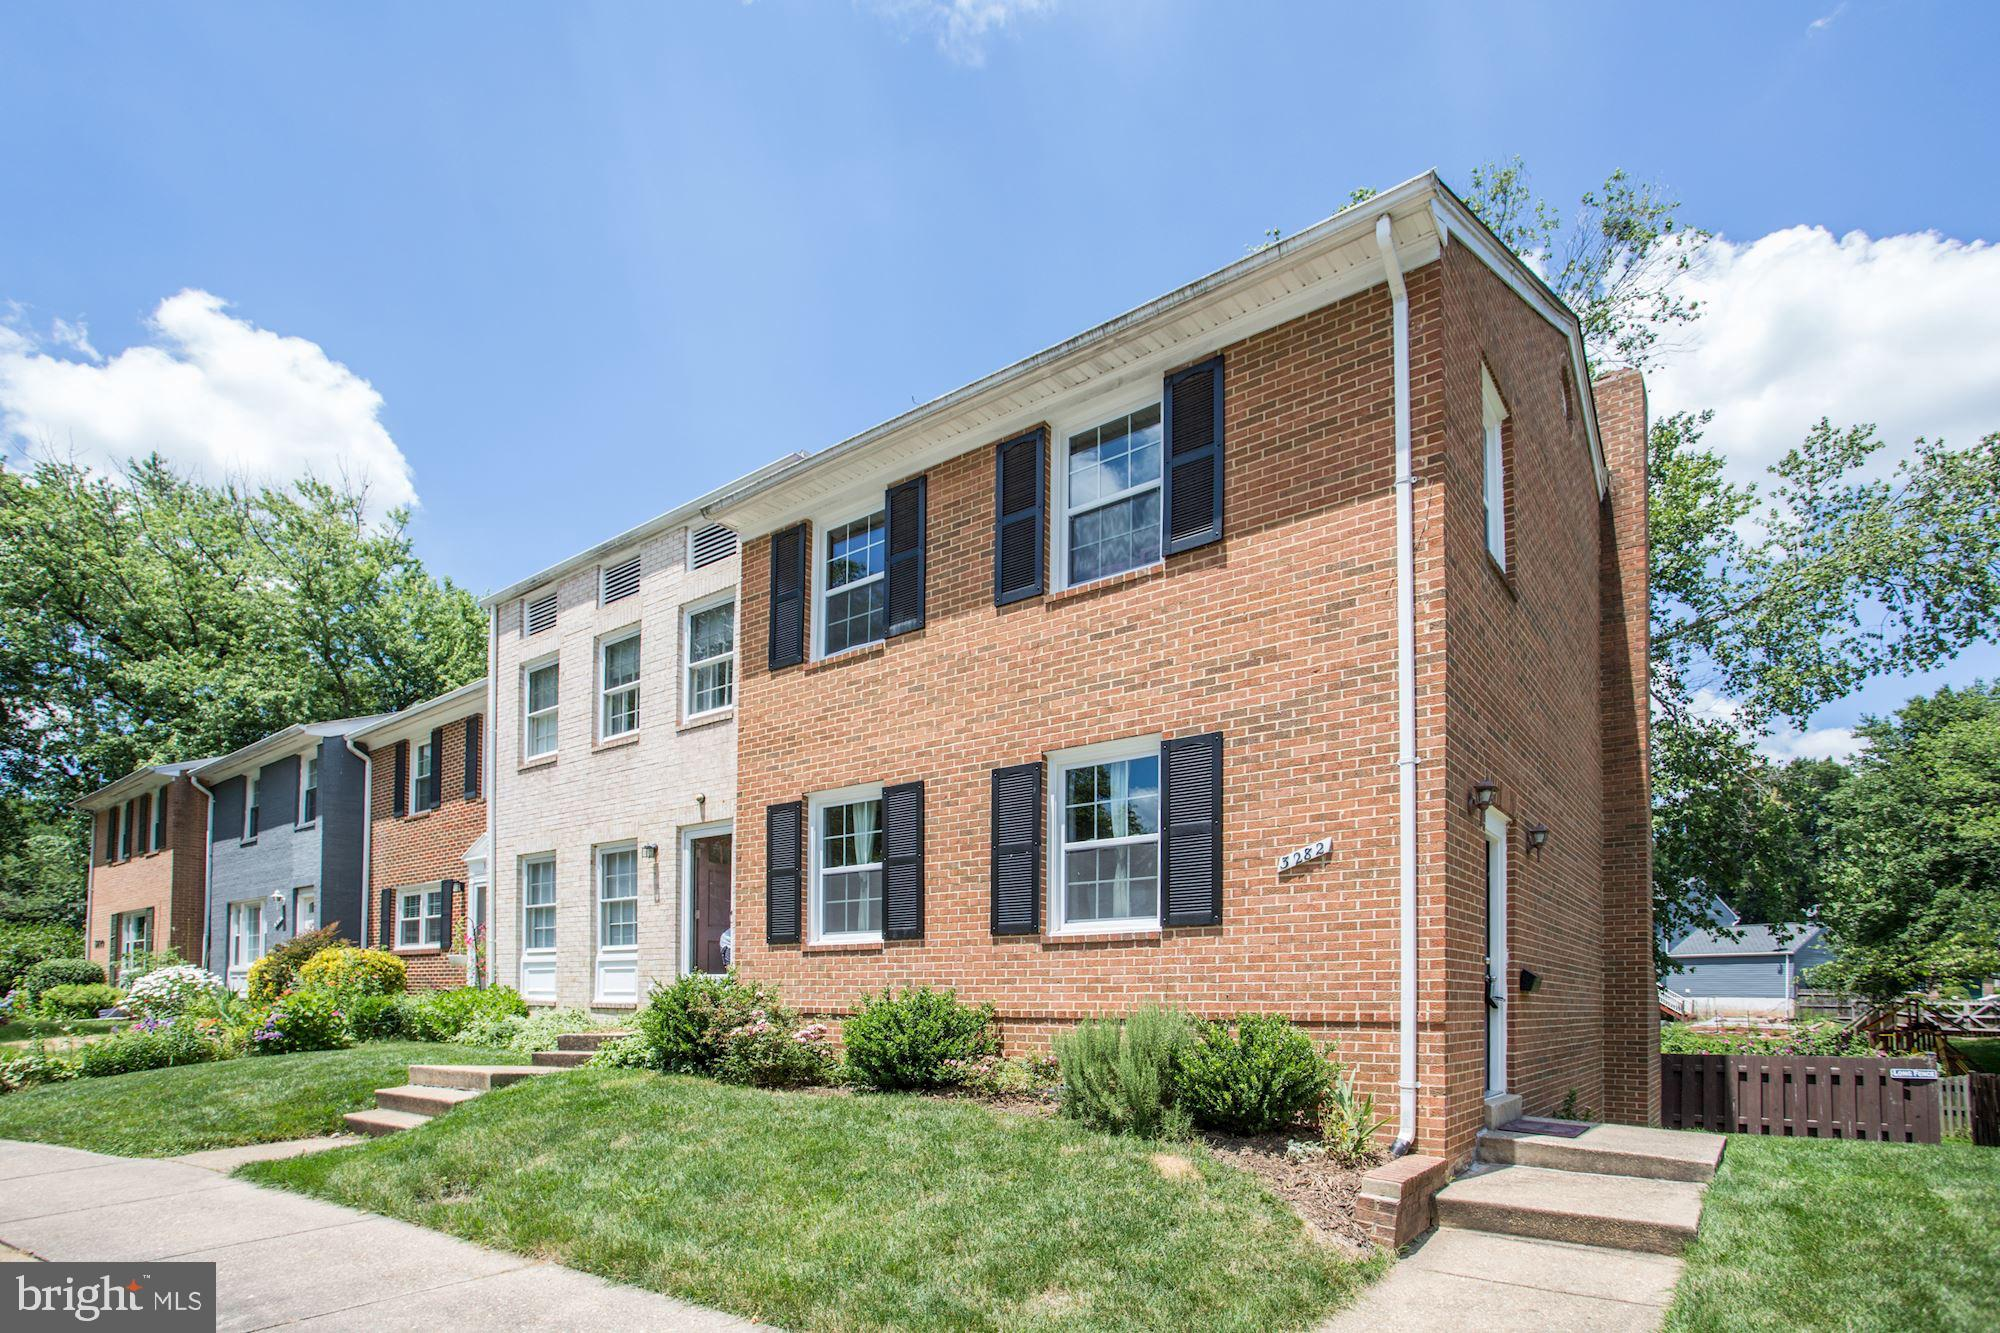 Beautifully updated 3 bedroom, 2.5.5 bath end-unit townhouse backing up to a quiet meadow in Strathmeade Square! Completely renovated in 2018 and freshly painted in 2020, this lovely home is move-in ready. It's all been done so you don't have to do a thing! You'll get to enjoy a sunny living room, formal dining room and nicely updated kitchen with stainless steel appliances, granite counters and breakfast bar with pendant lighting. Upstairs find a master suite along with two more bedrooms sharing a hall bath. Enjoy a lower level rec room with wood burning fireplace that steps out to a rear patio and fully fenced back yard. Easy access to Fairfax Hospital! Moments to trails and tot lots, and Gallows Road, I-495 and all that Mosaic shops, dining and entertainment have to offer!